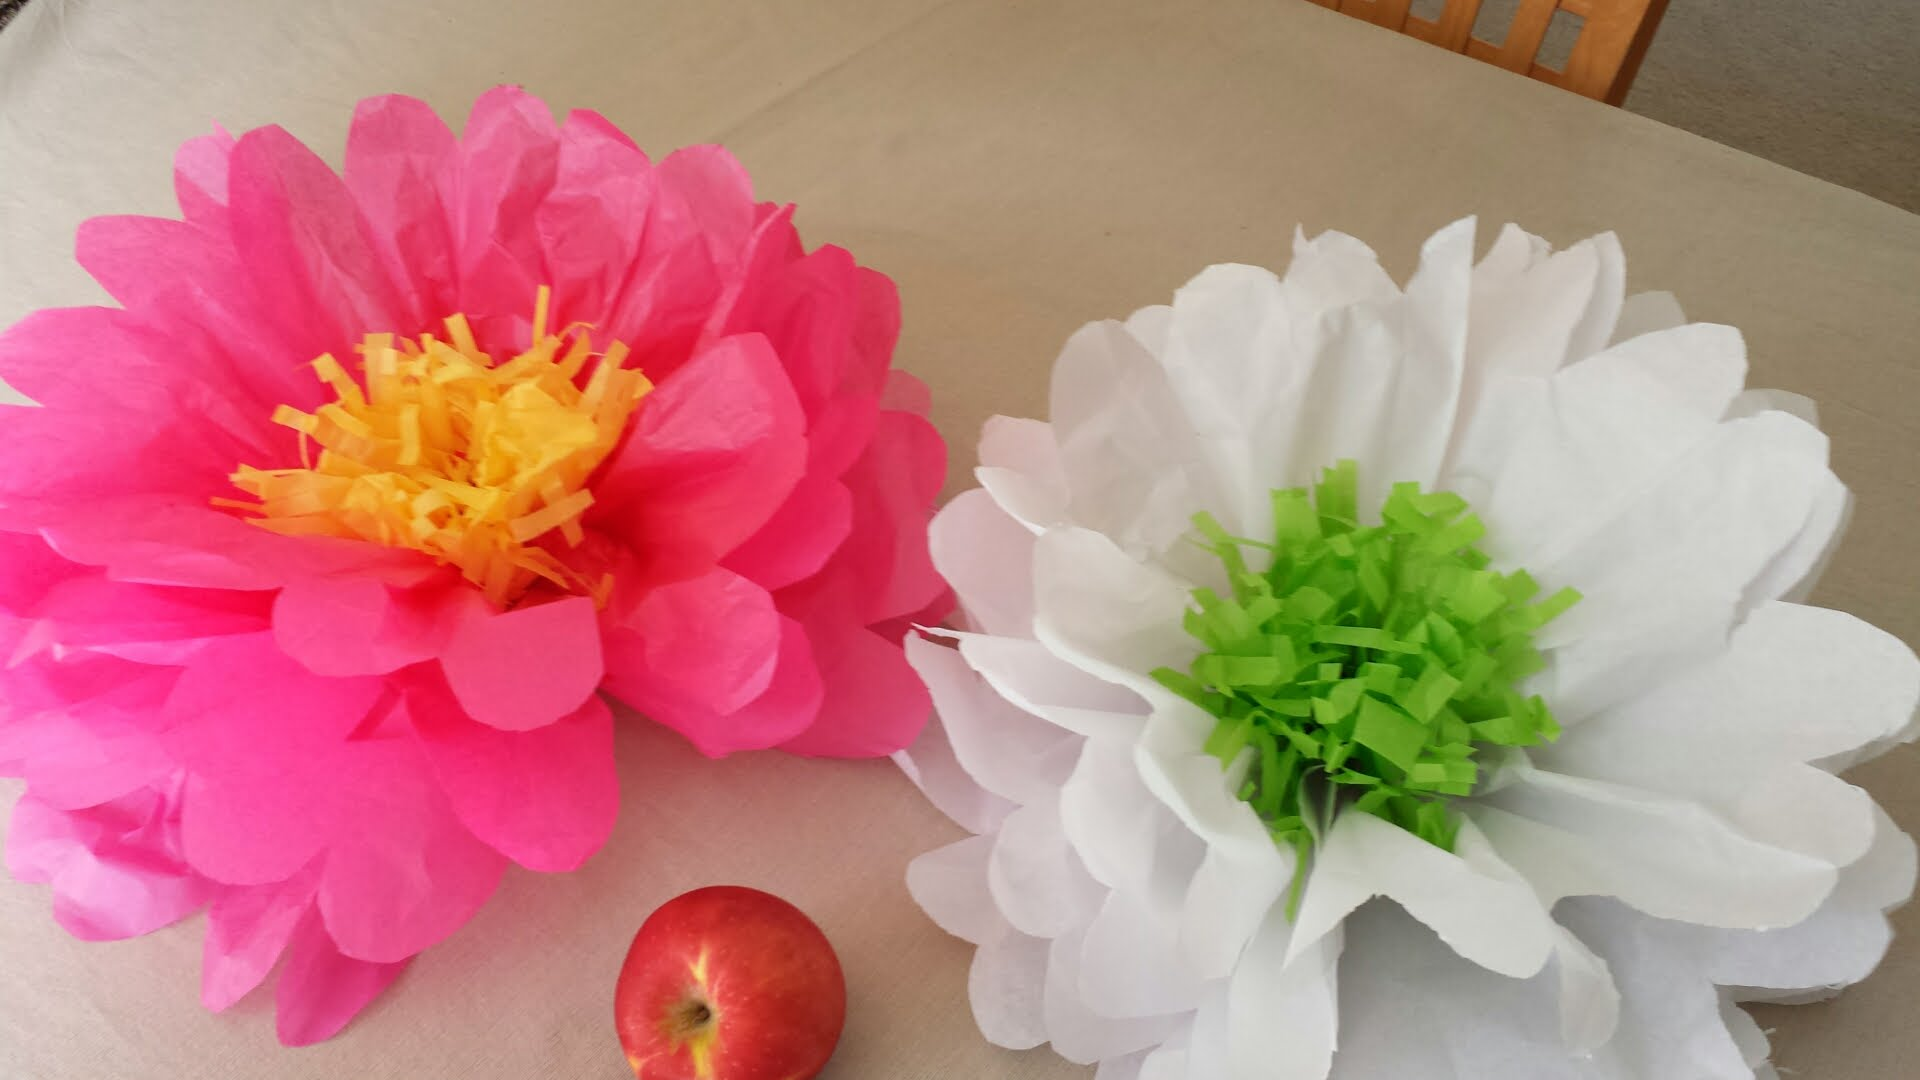 how to make big tissue paper flowers How to make tissue paper flowers tissue paper flowers make great decorations and party décor they're eye-catching and colorful as well as inexpensive.